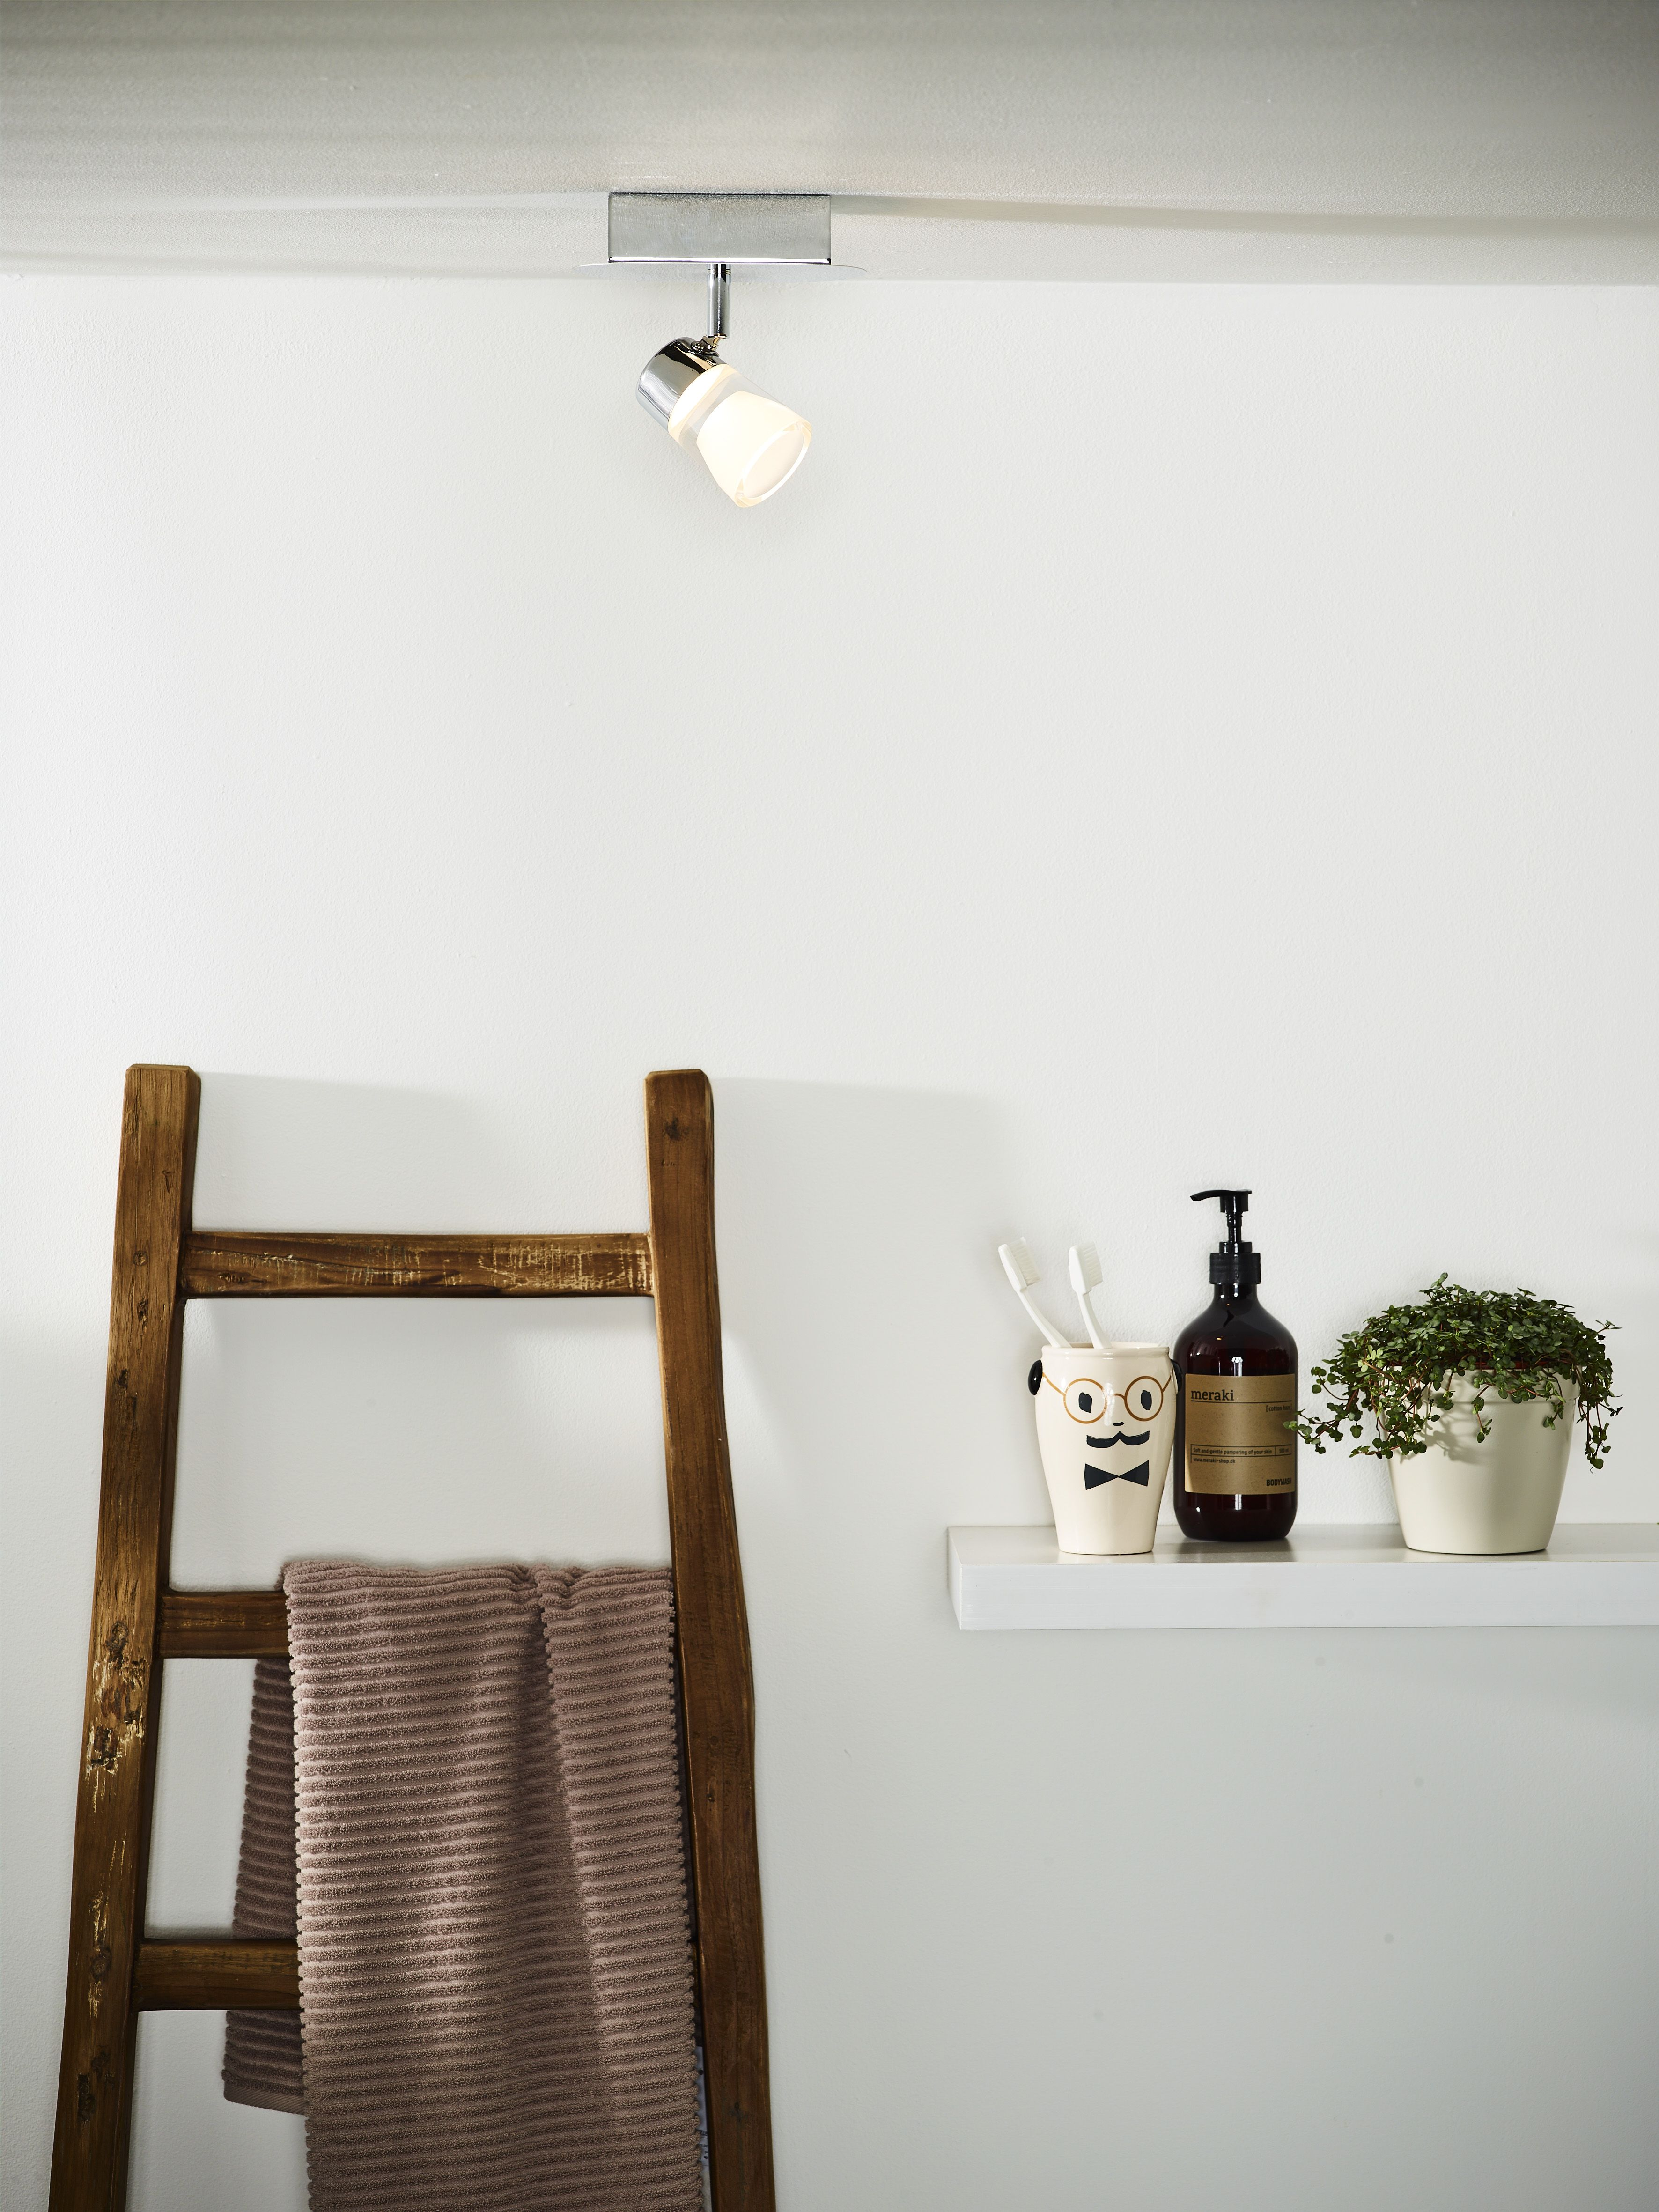 Looking For Timeless Stylish And Practical Lighting In The Bathroom Xanto Is The Ideal Solution Lucide Xanto Led Badkamer Inspiratie Badkamer Verlichting